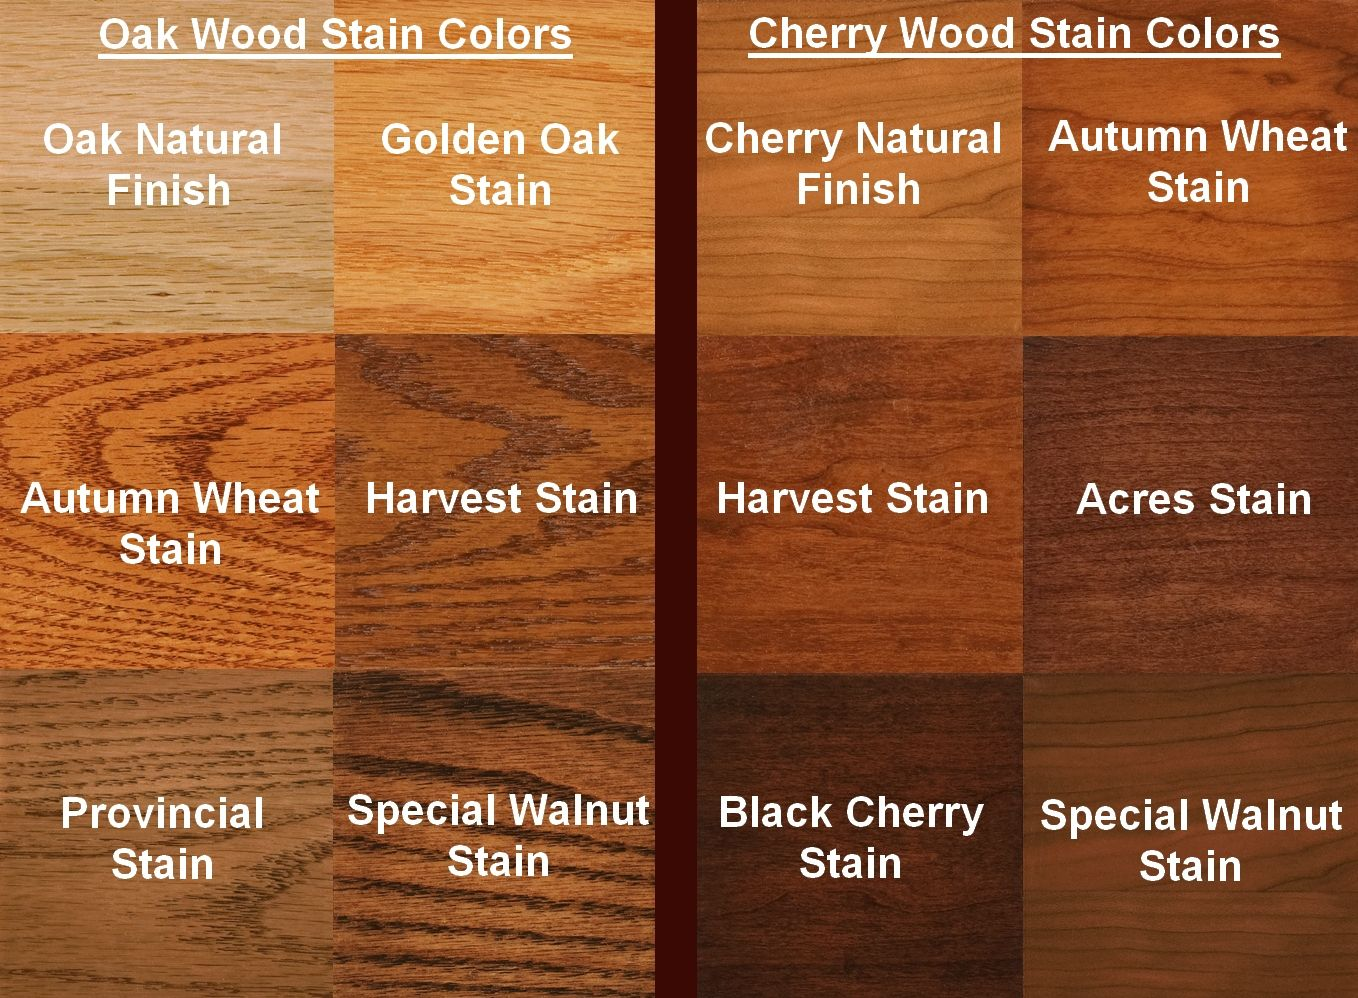 Oak Wood Color ~ Oak color your choice of the following wood species and